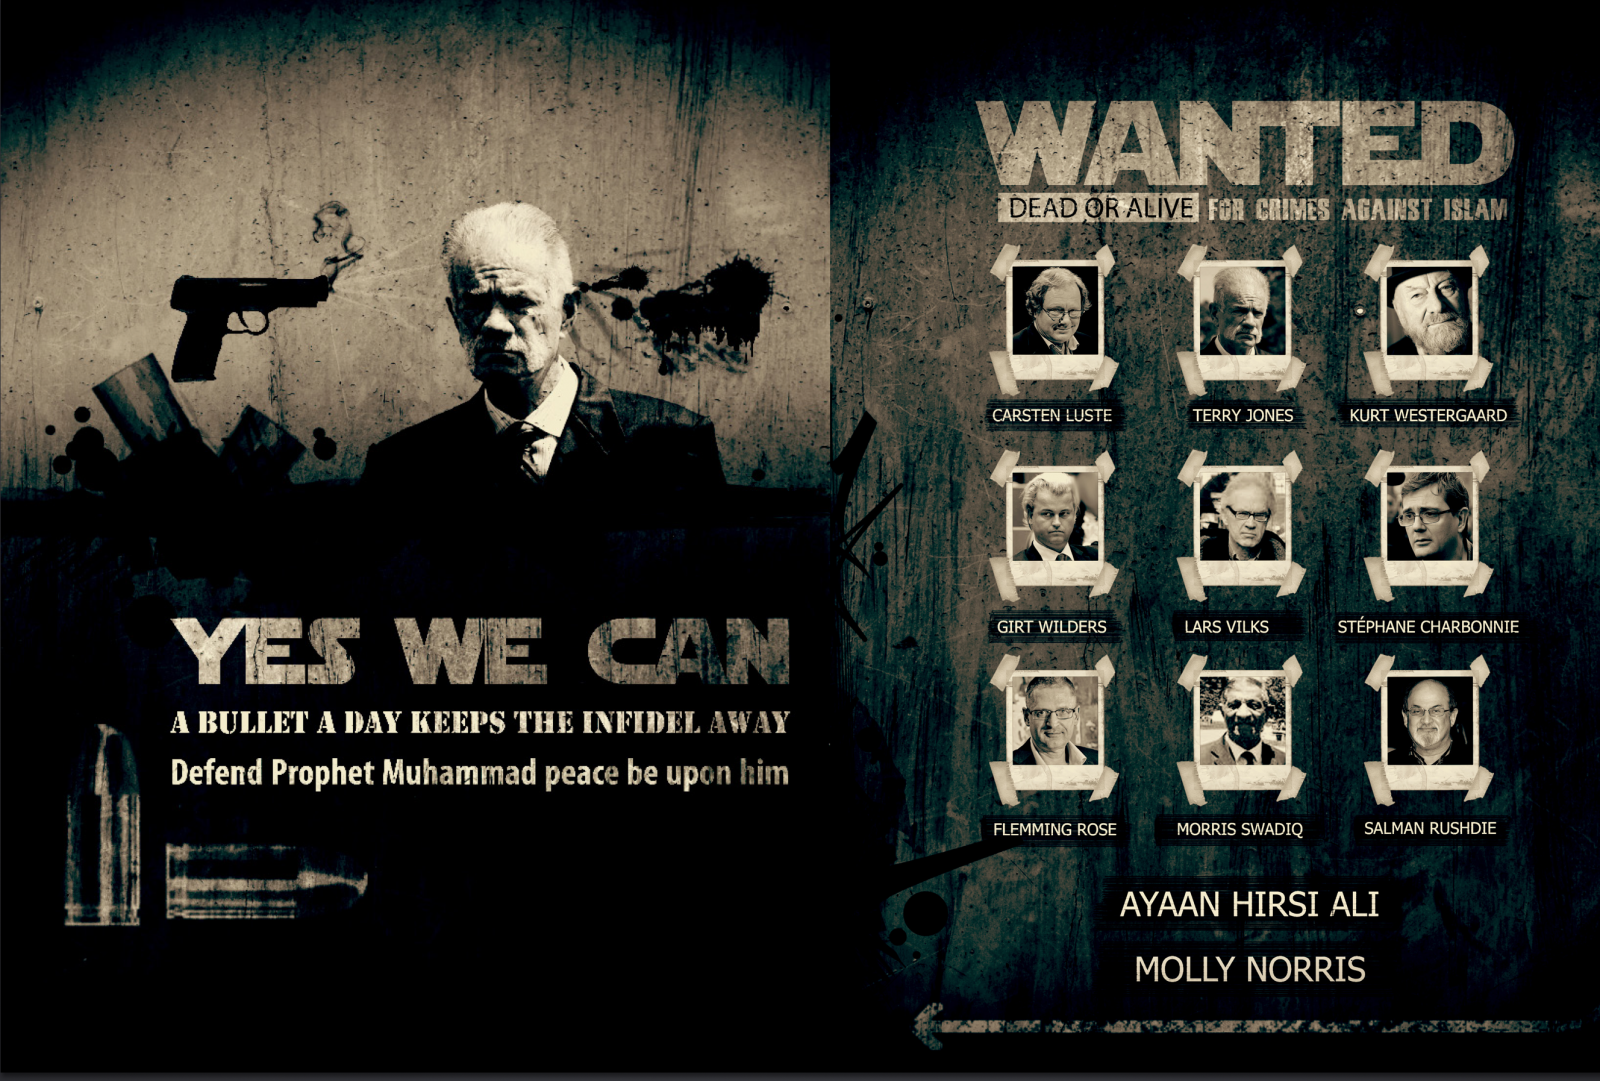 Список «Wanted: Dead or Alive» из журнала Inspire